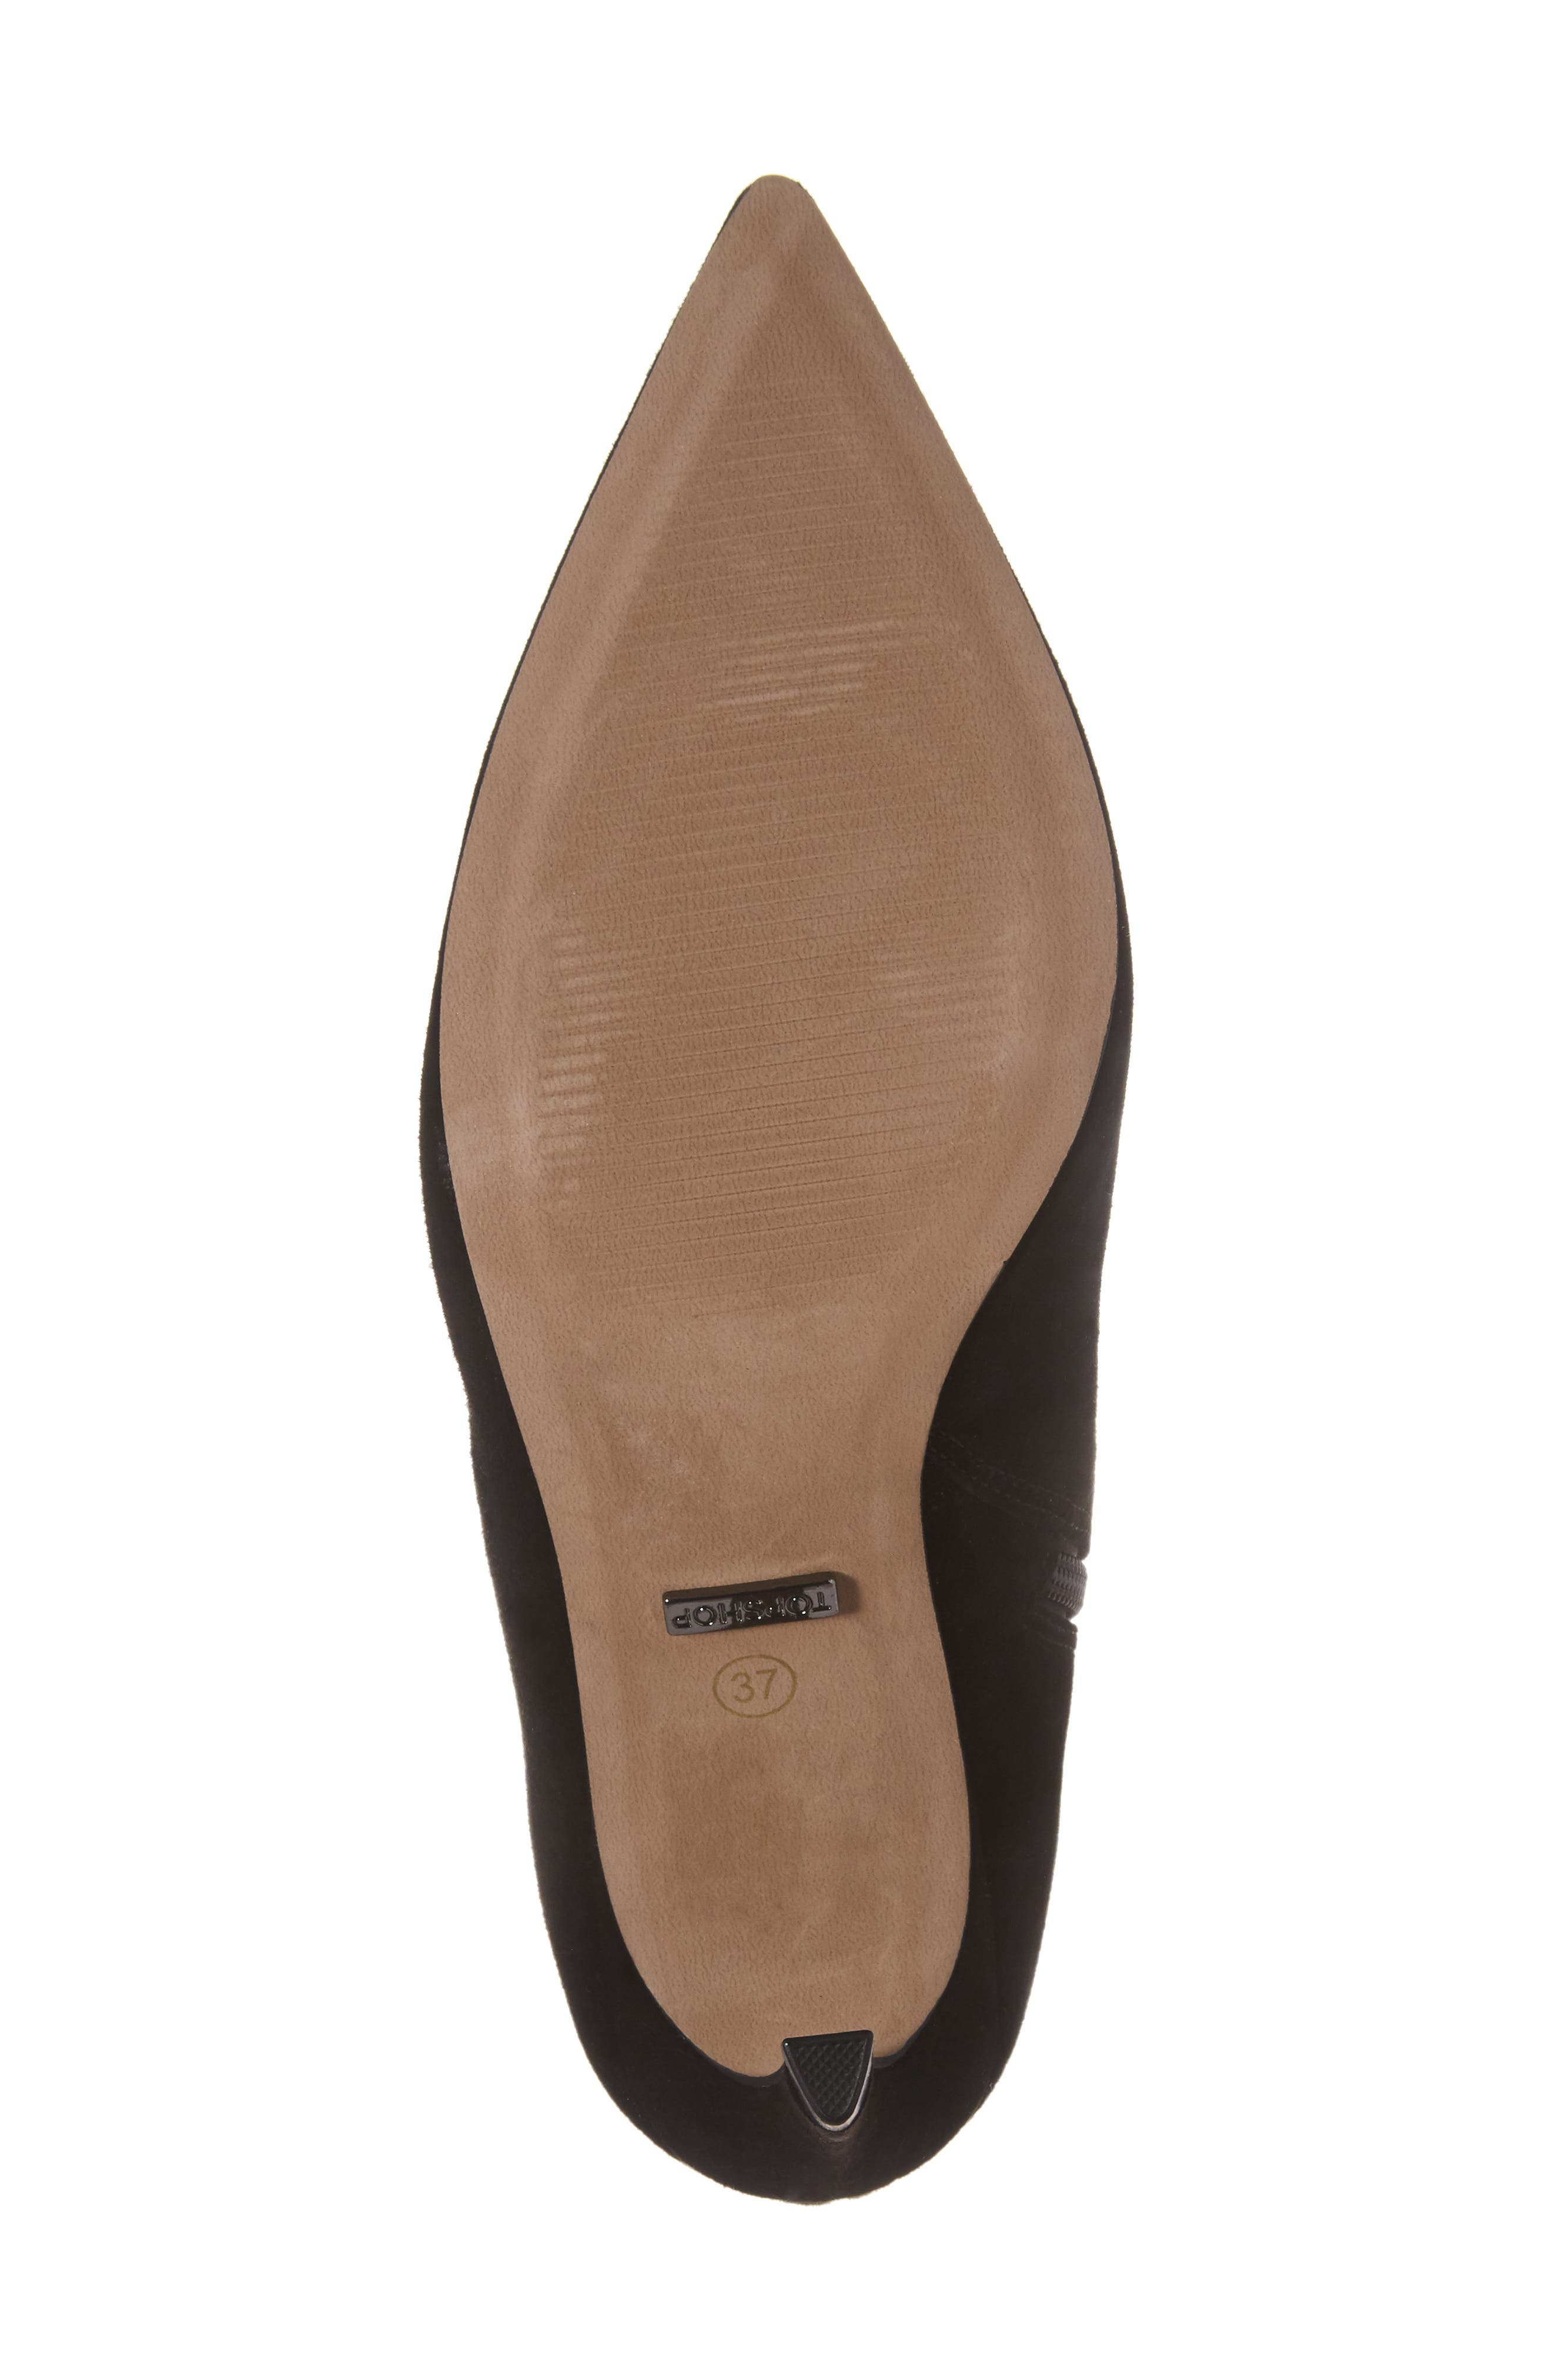 Hot Toddy Pointy Toe Boot,                             Alternate thumbnail 6, color,                             001